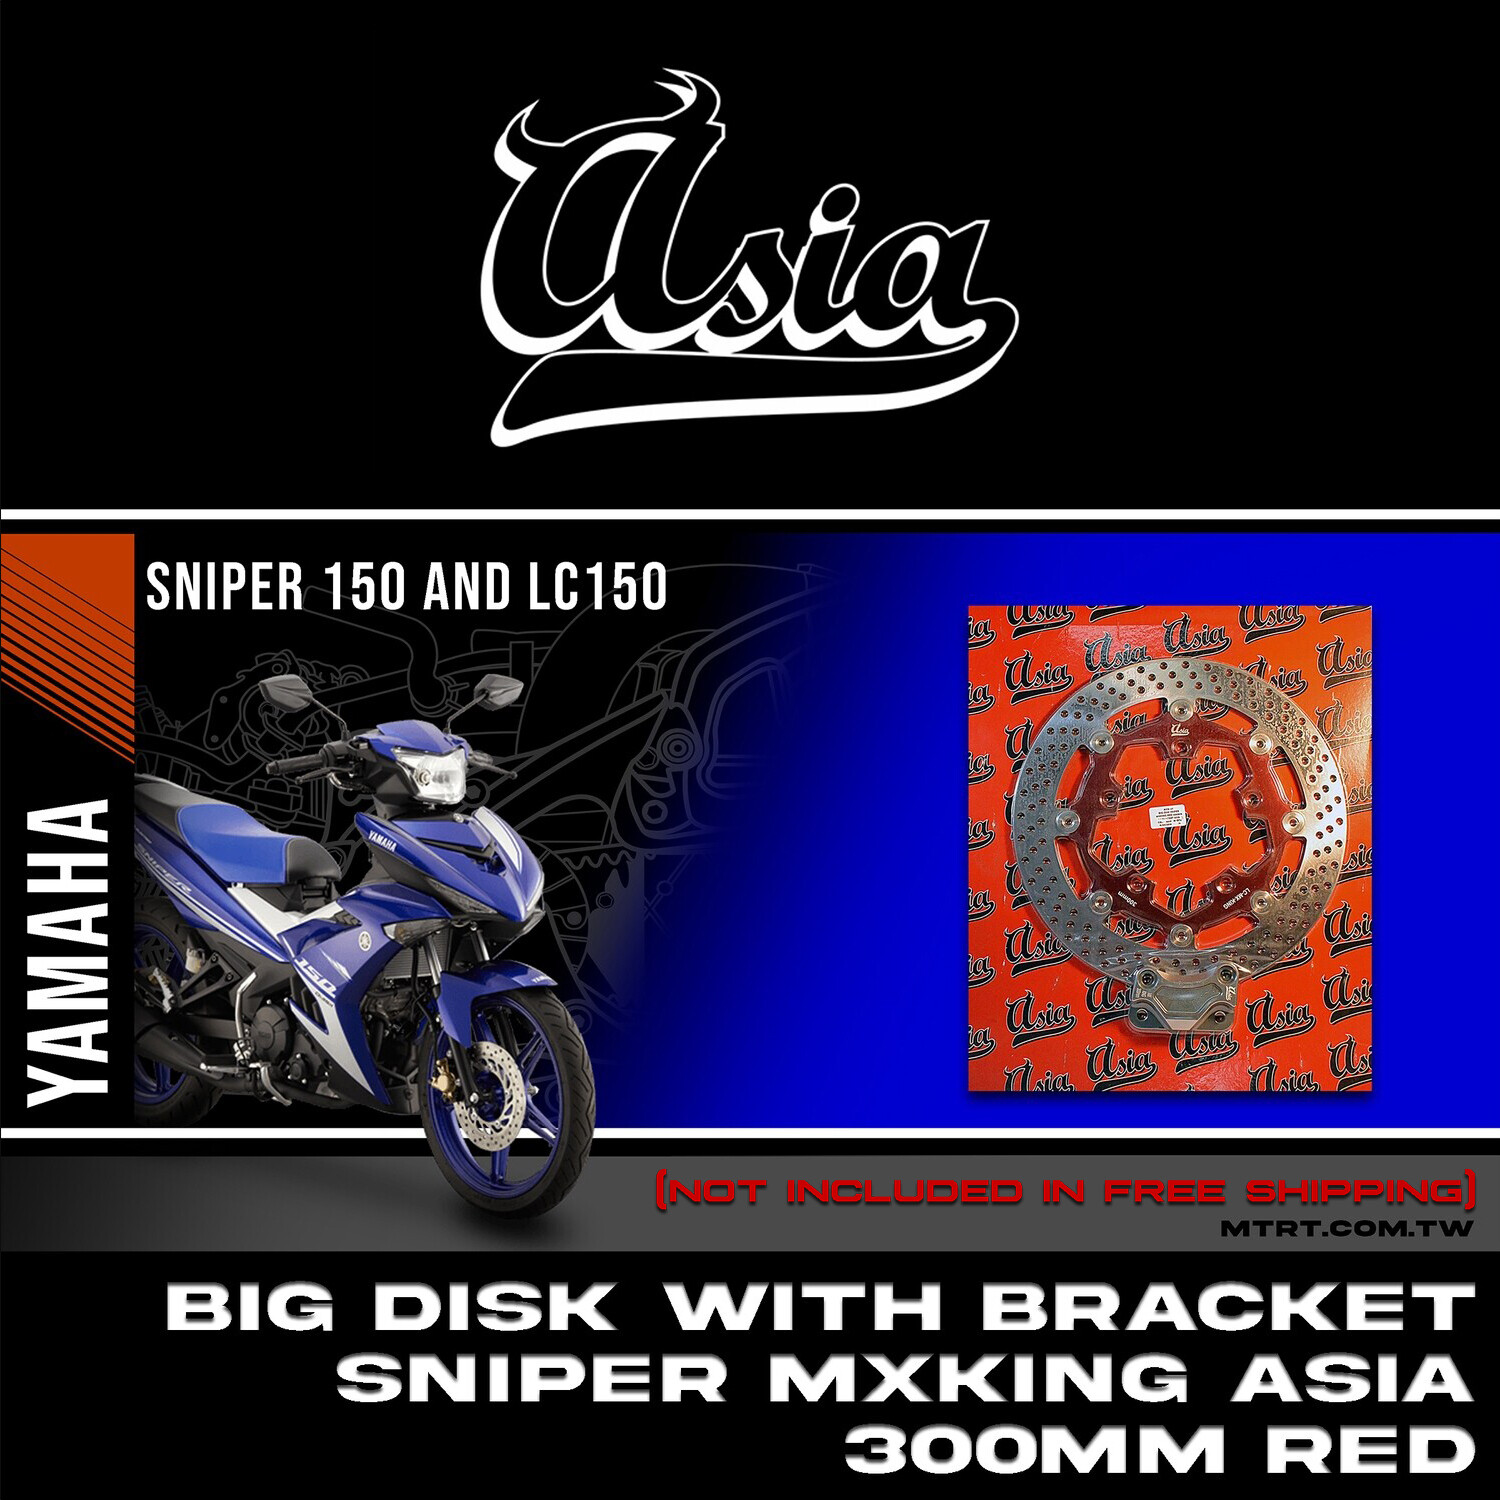 BIG DISK SNIPER Mxking RED 300MM with Bracket  ASIA